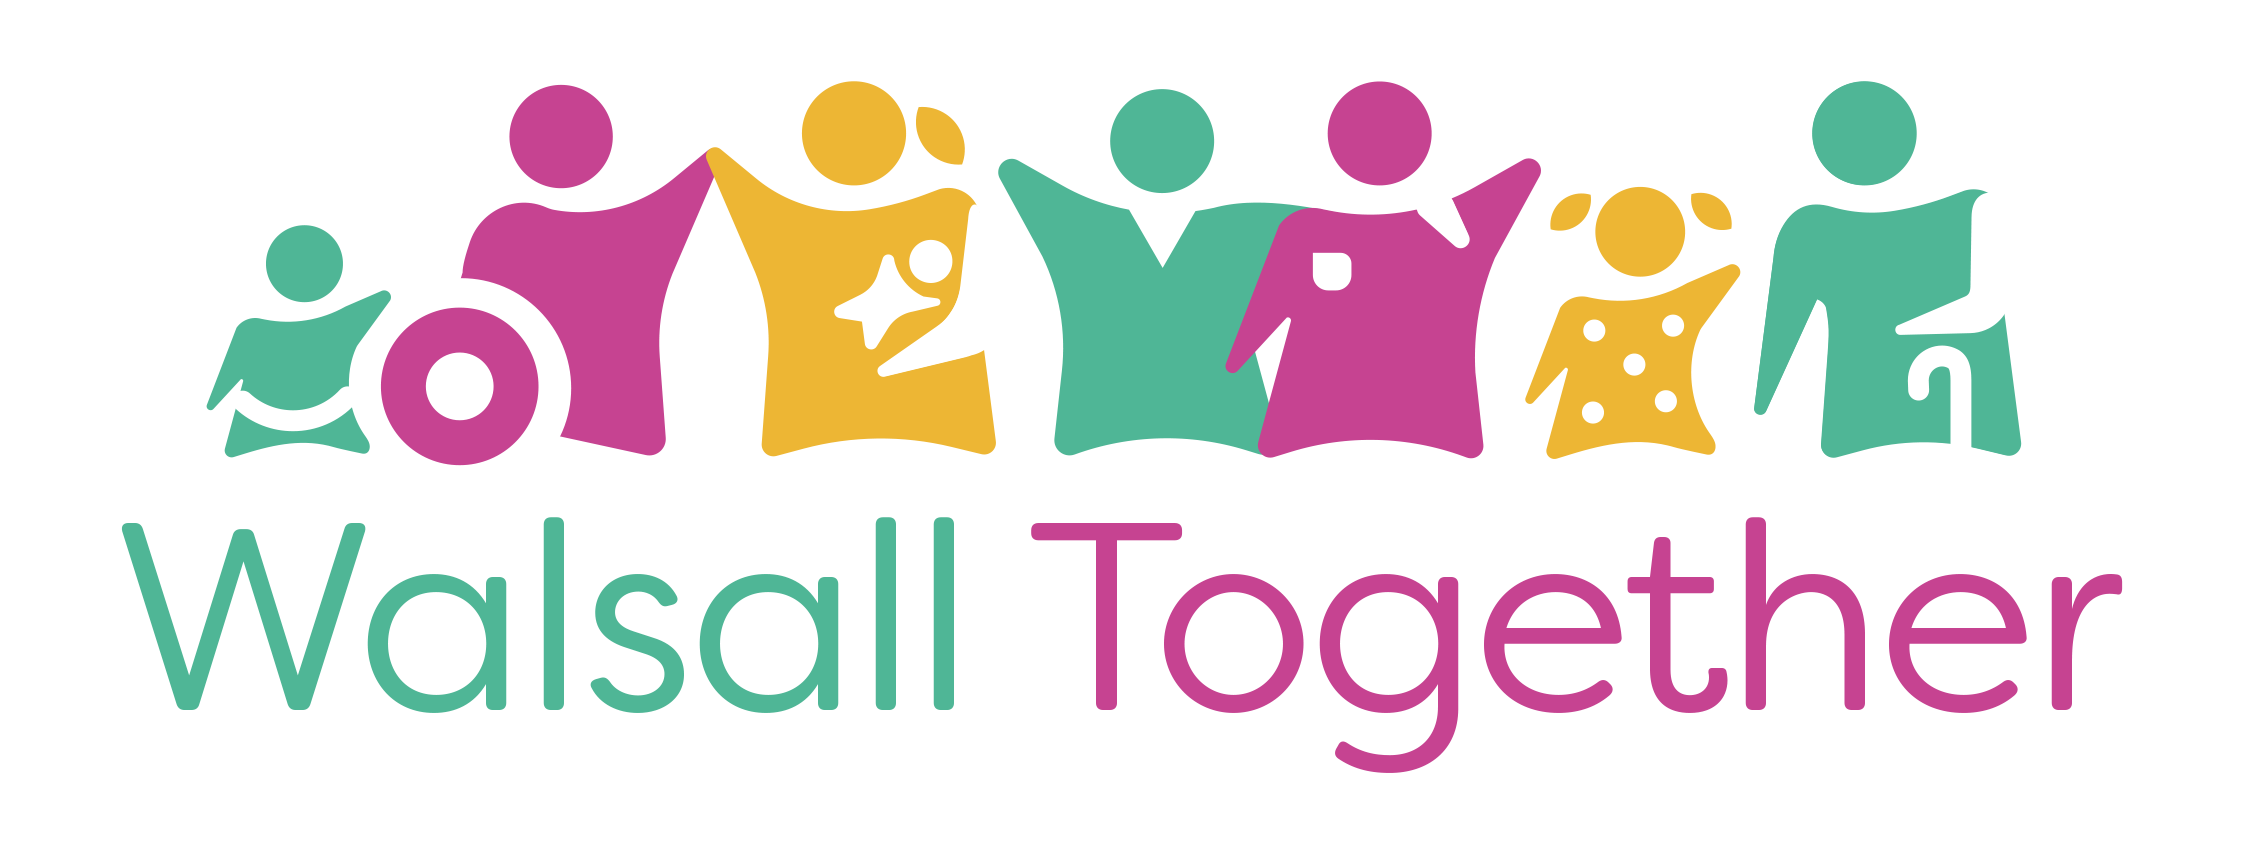 Walsall Together logo